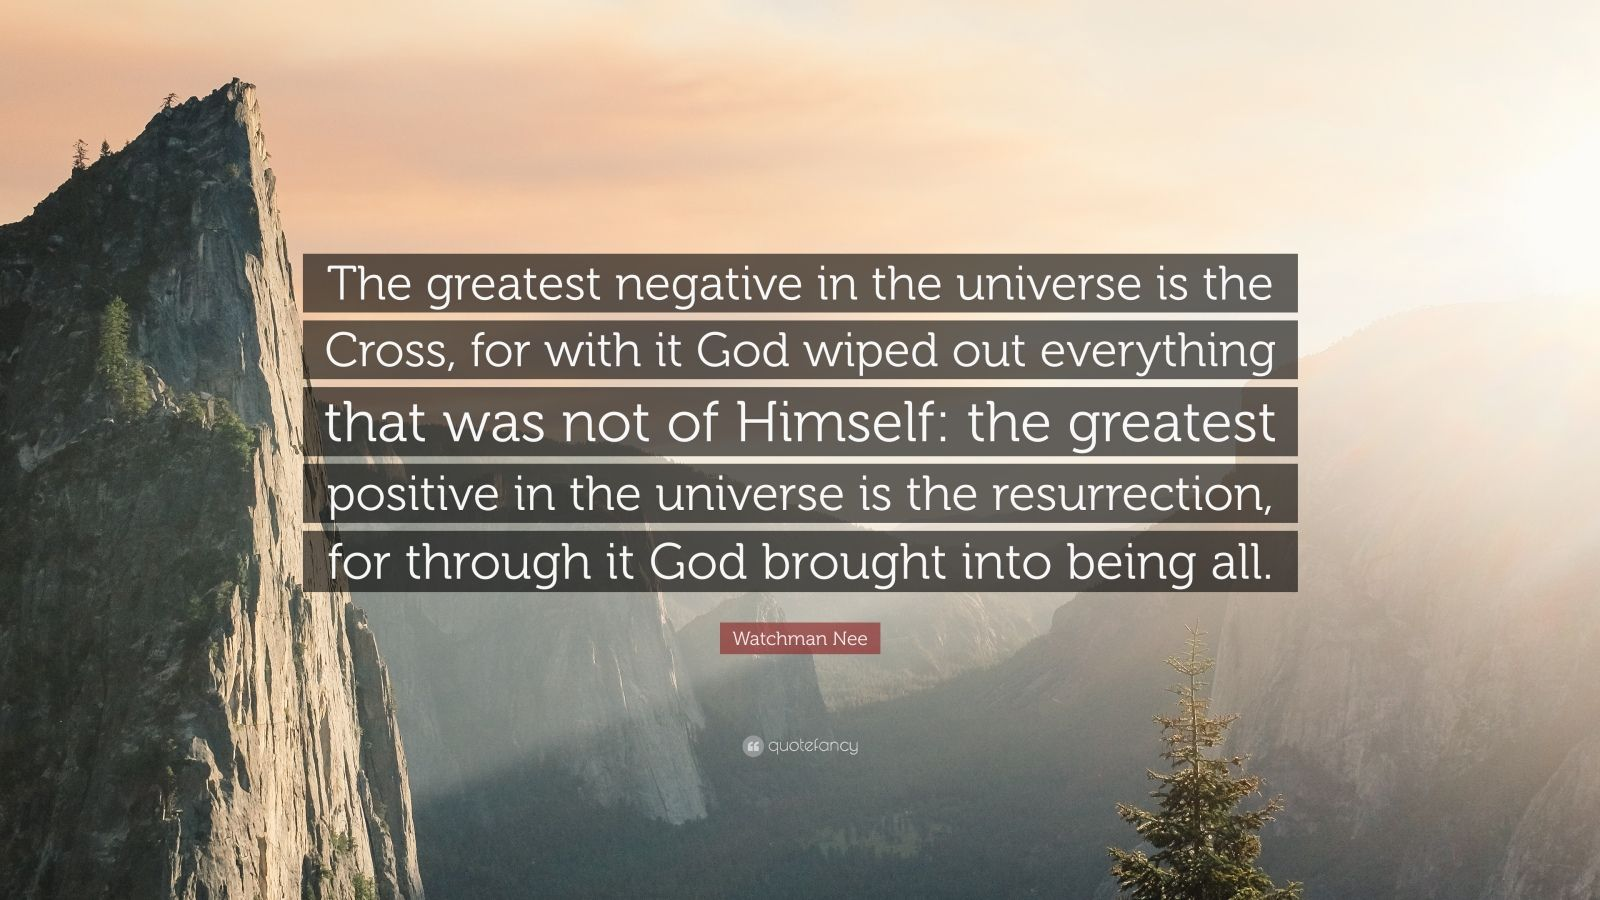 """Watchman Nee Quote: """"The greatest negative in the universe is the Cross, for with it God wiped out everything that was not of Himself: the greatest positive in the universe is the resurrection, for through it God brought into being all."""""""